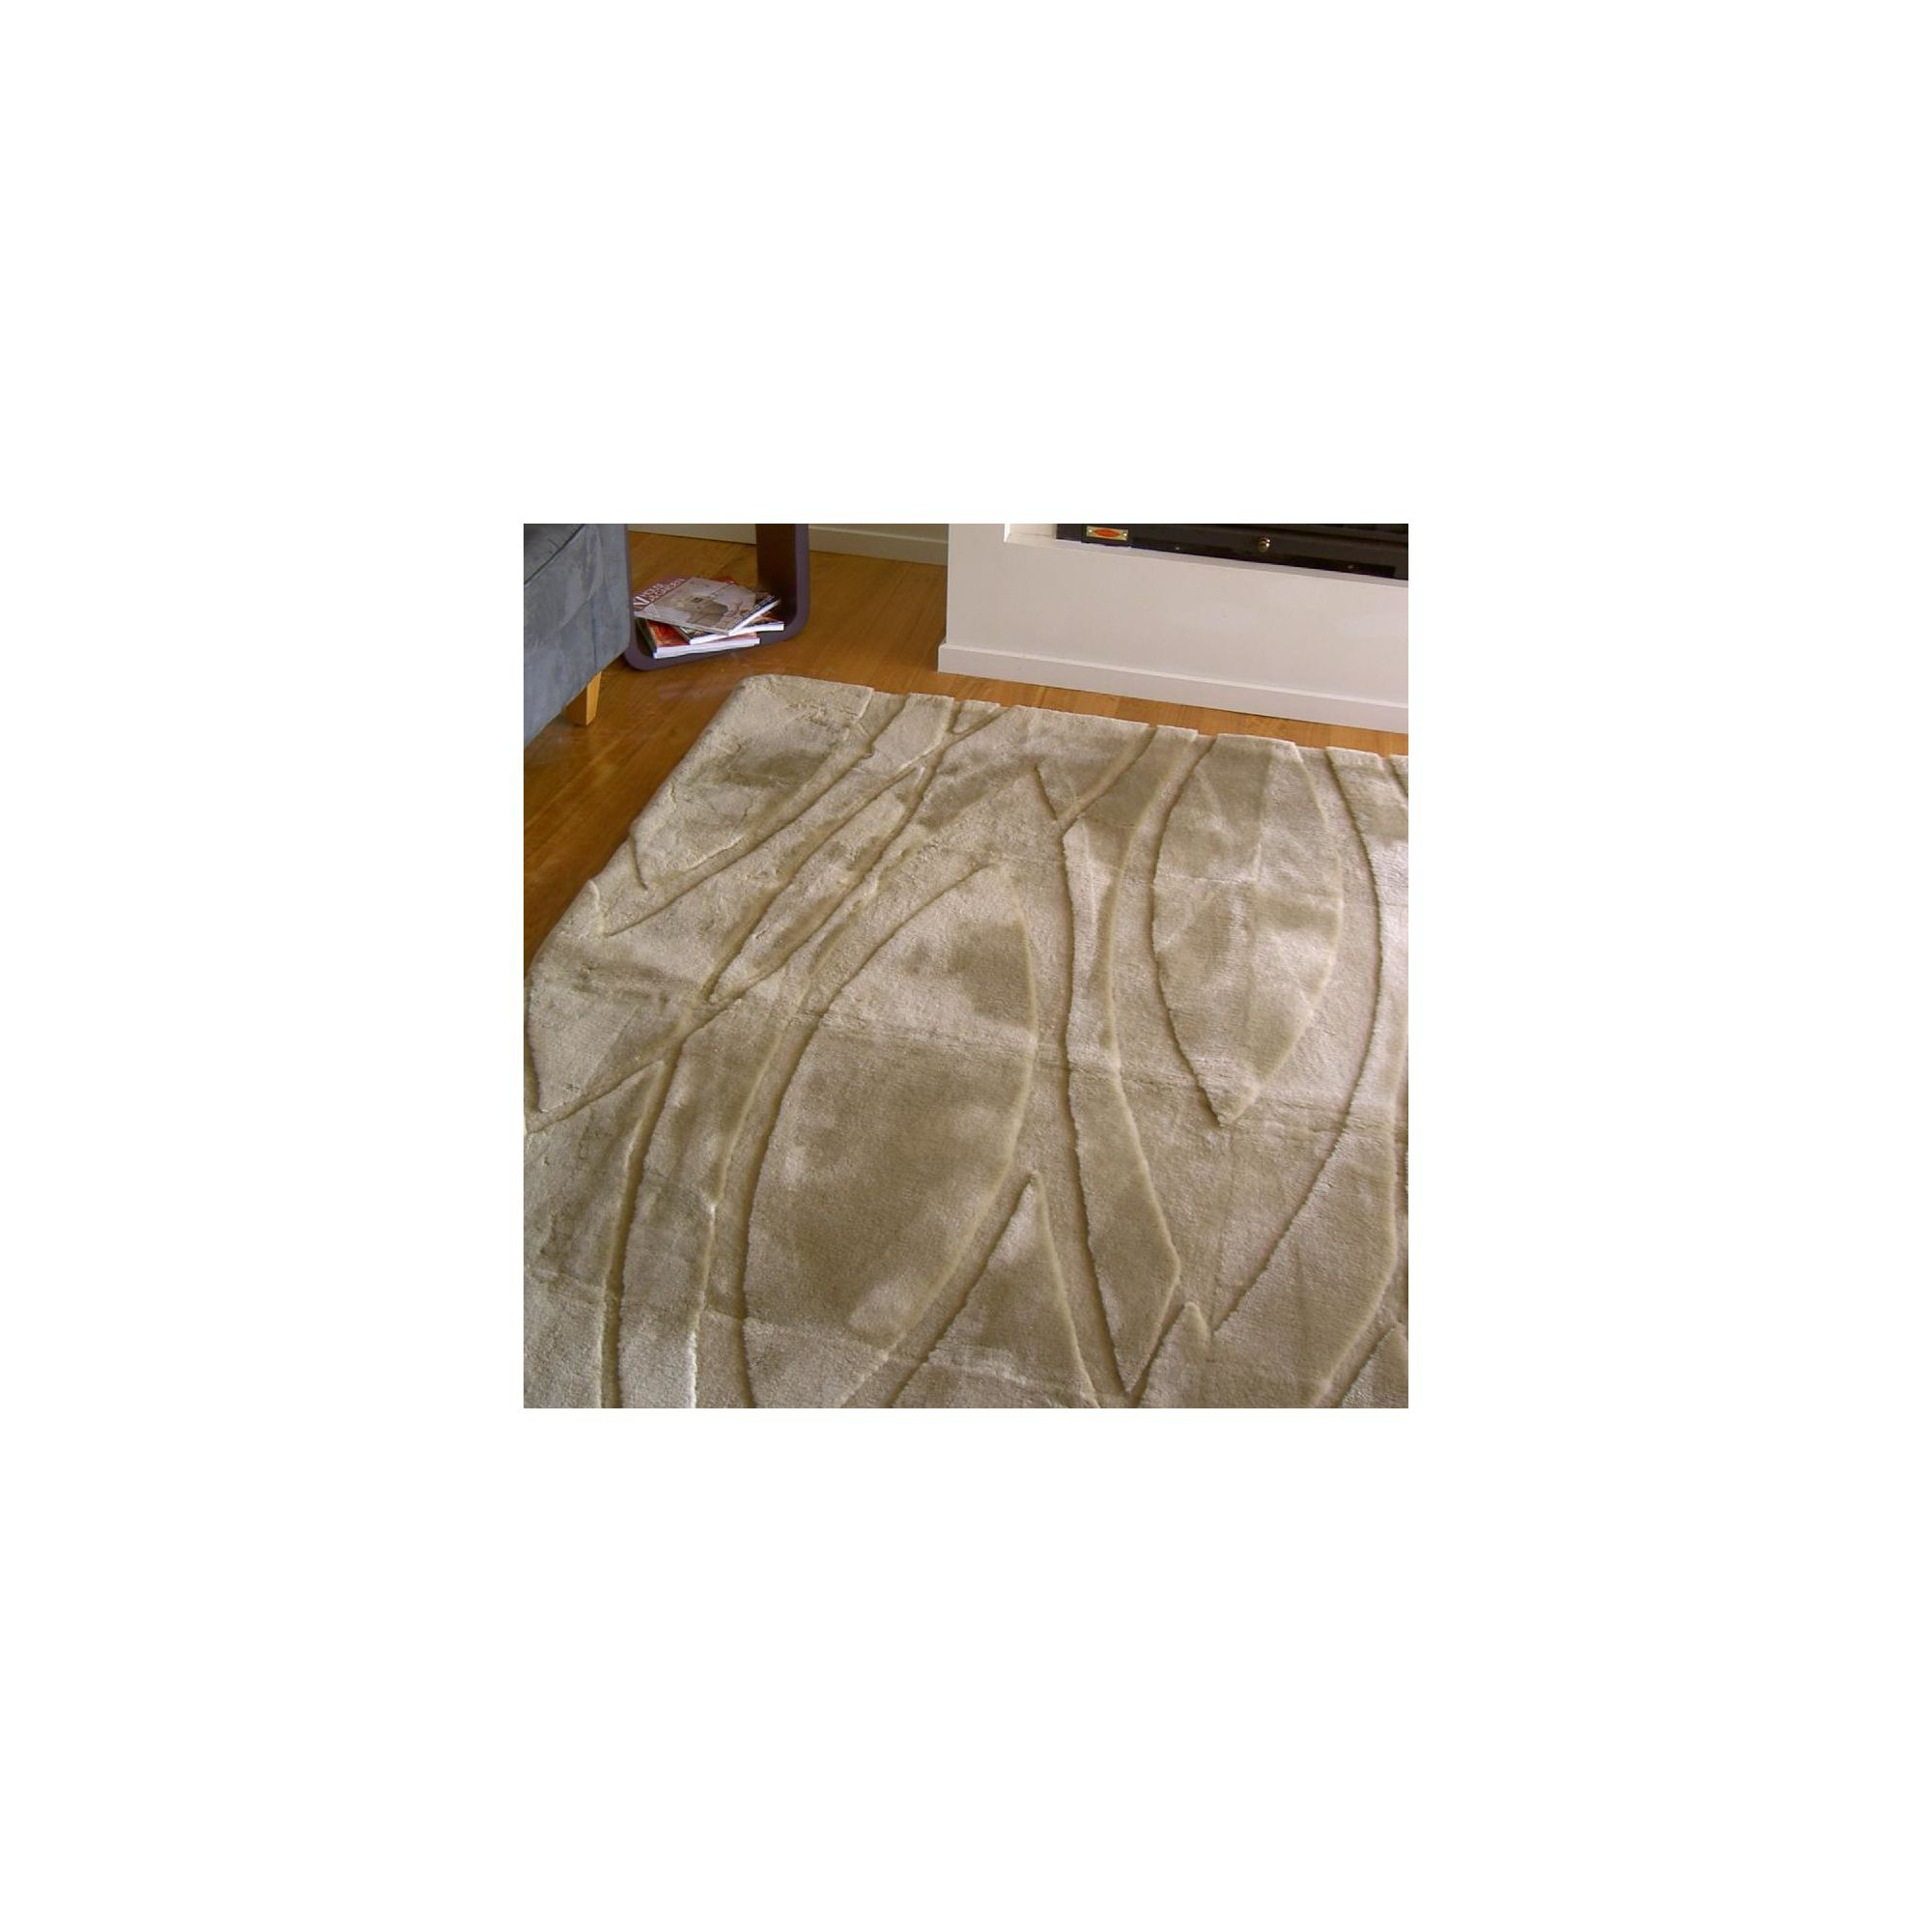 Bowron Sheepskin Shortwool Design Curves Rug - 180cm H x 120cm W x 1cm D at Tesco Direct